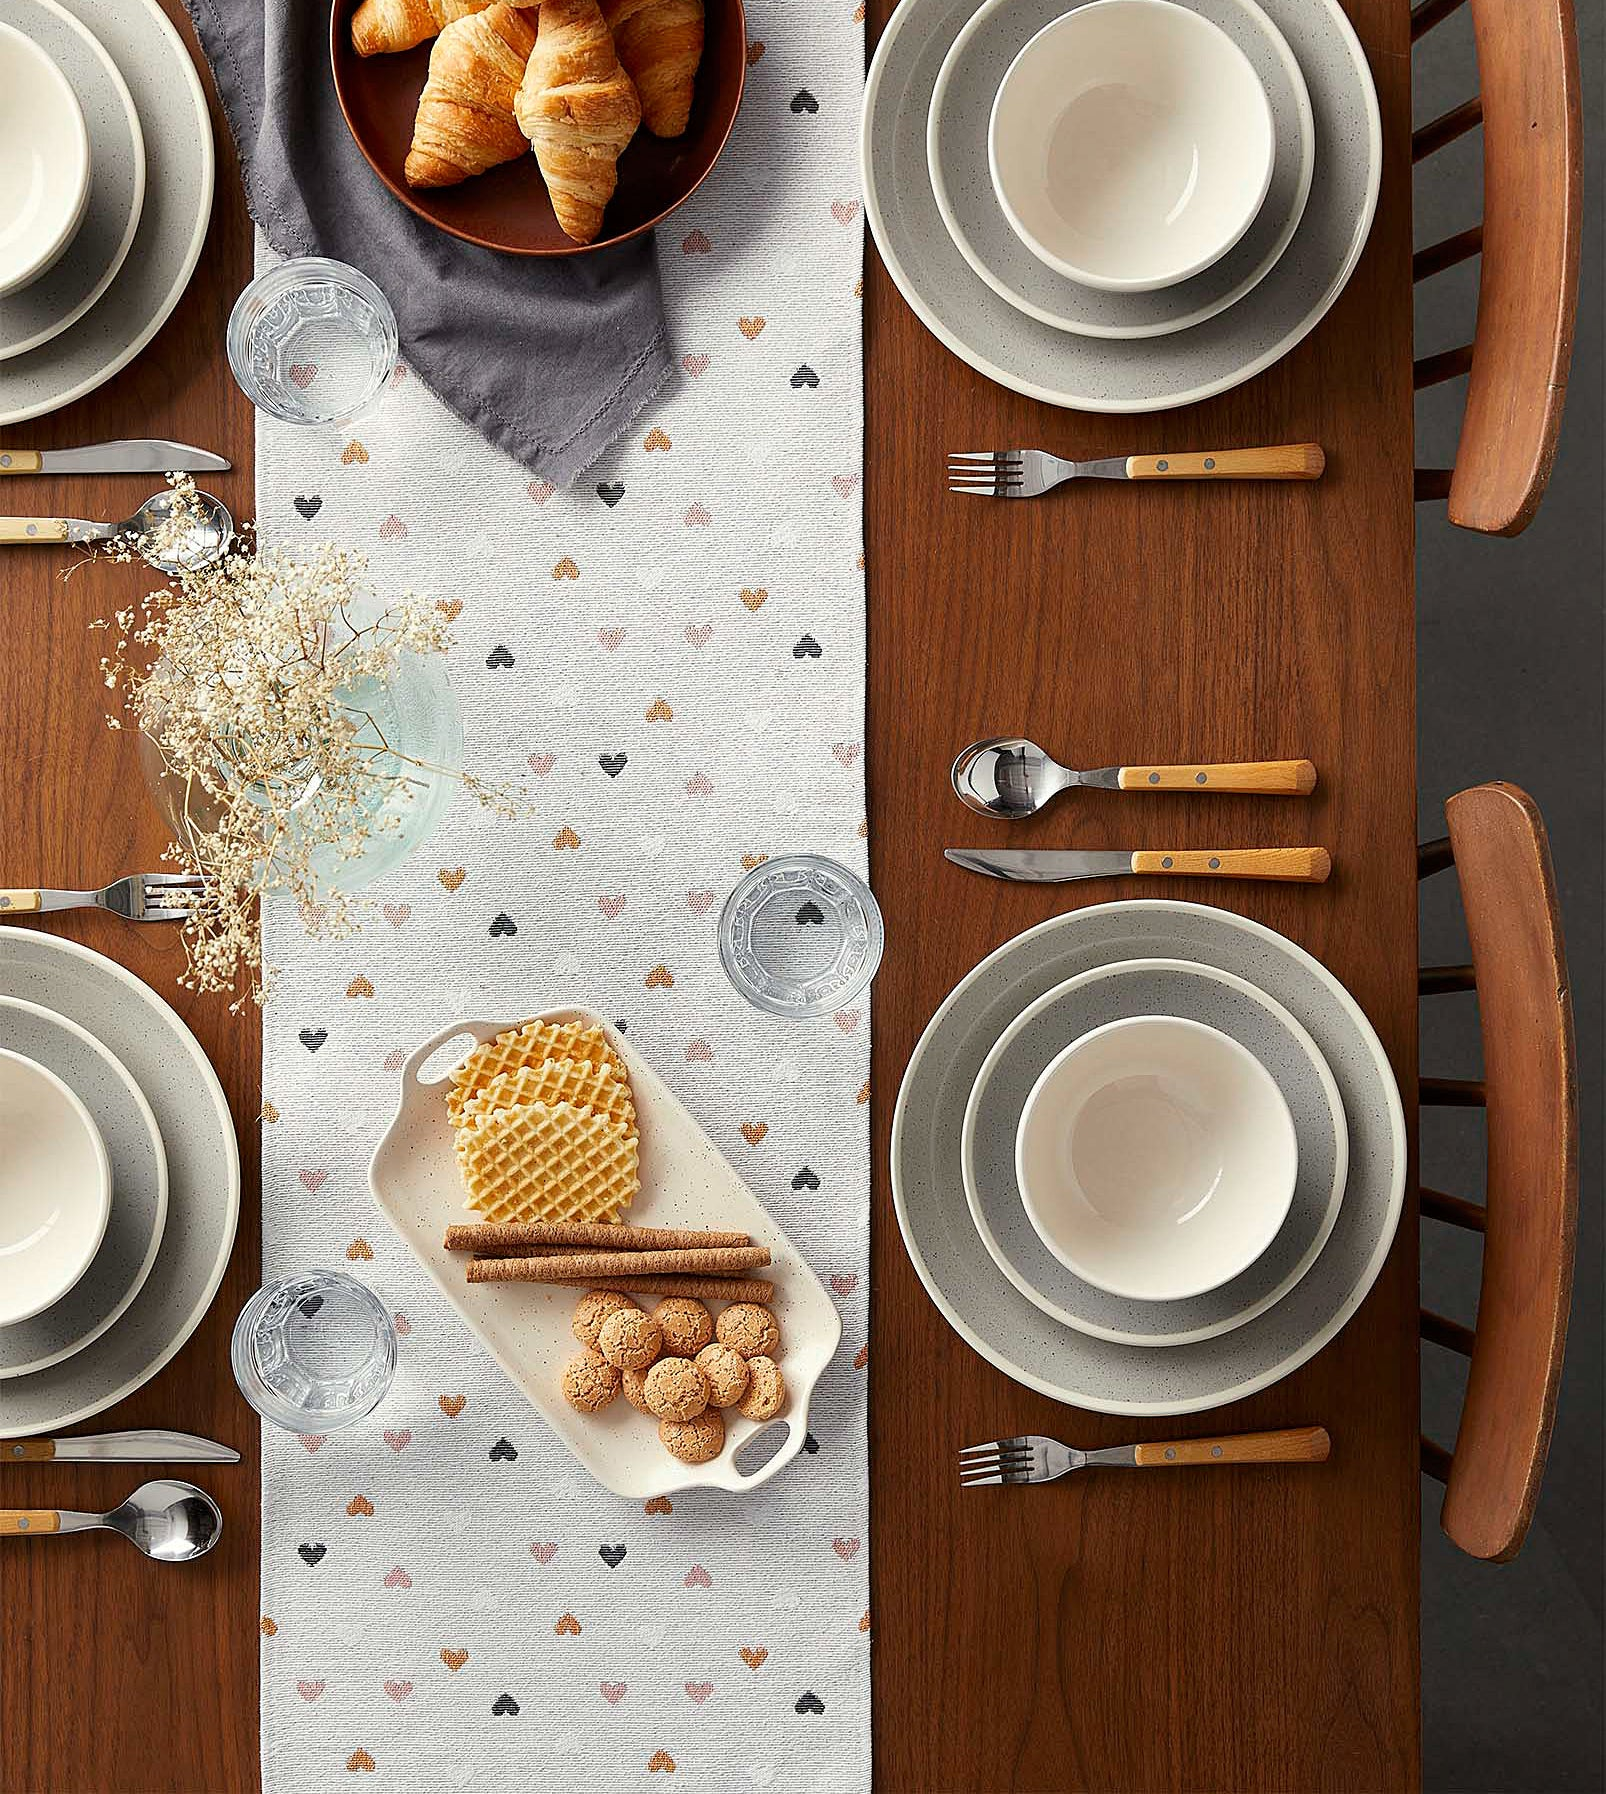 The table runner dotted with hearts laying flat on a table